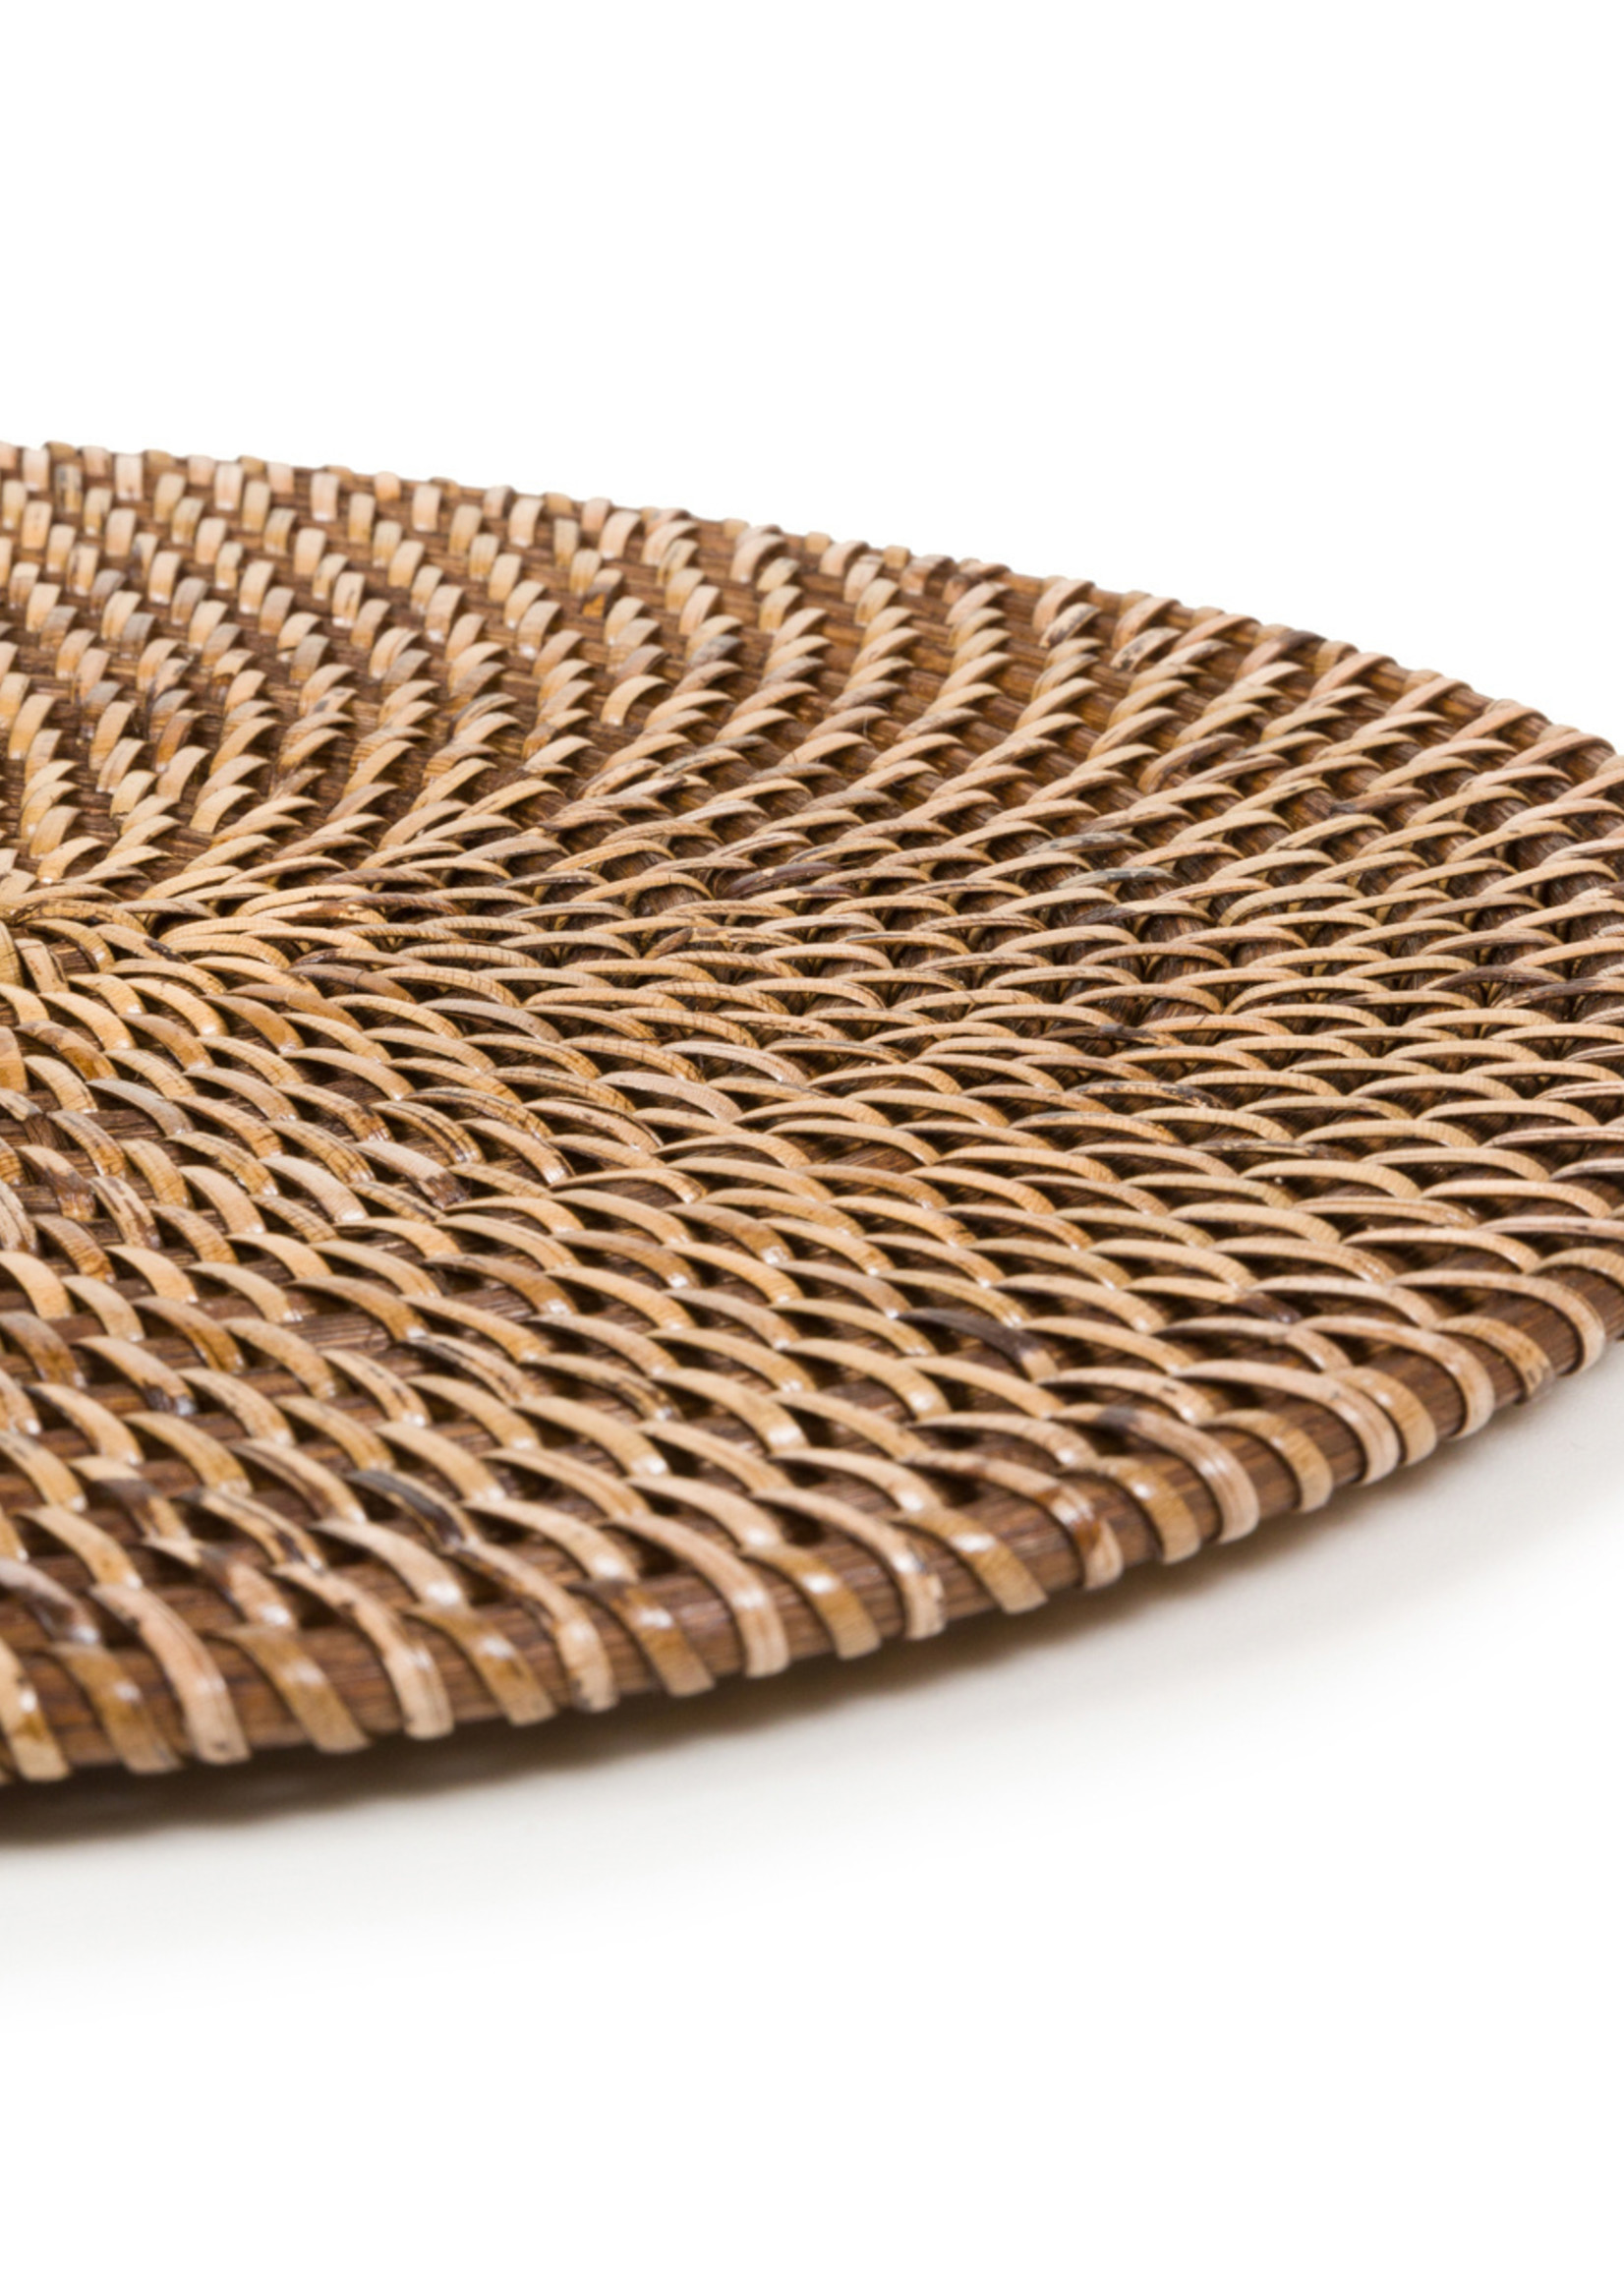 The Colonial Oval Placemat - Natural Brown